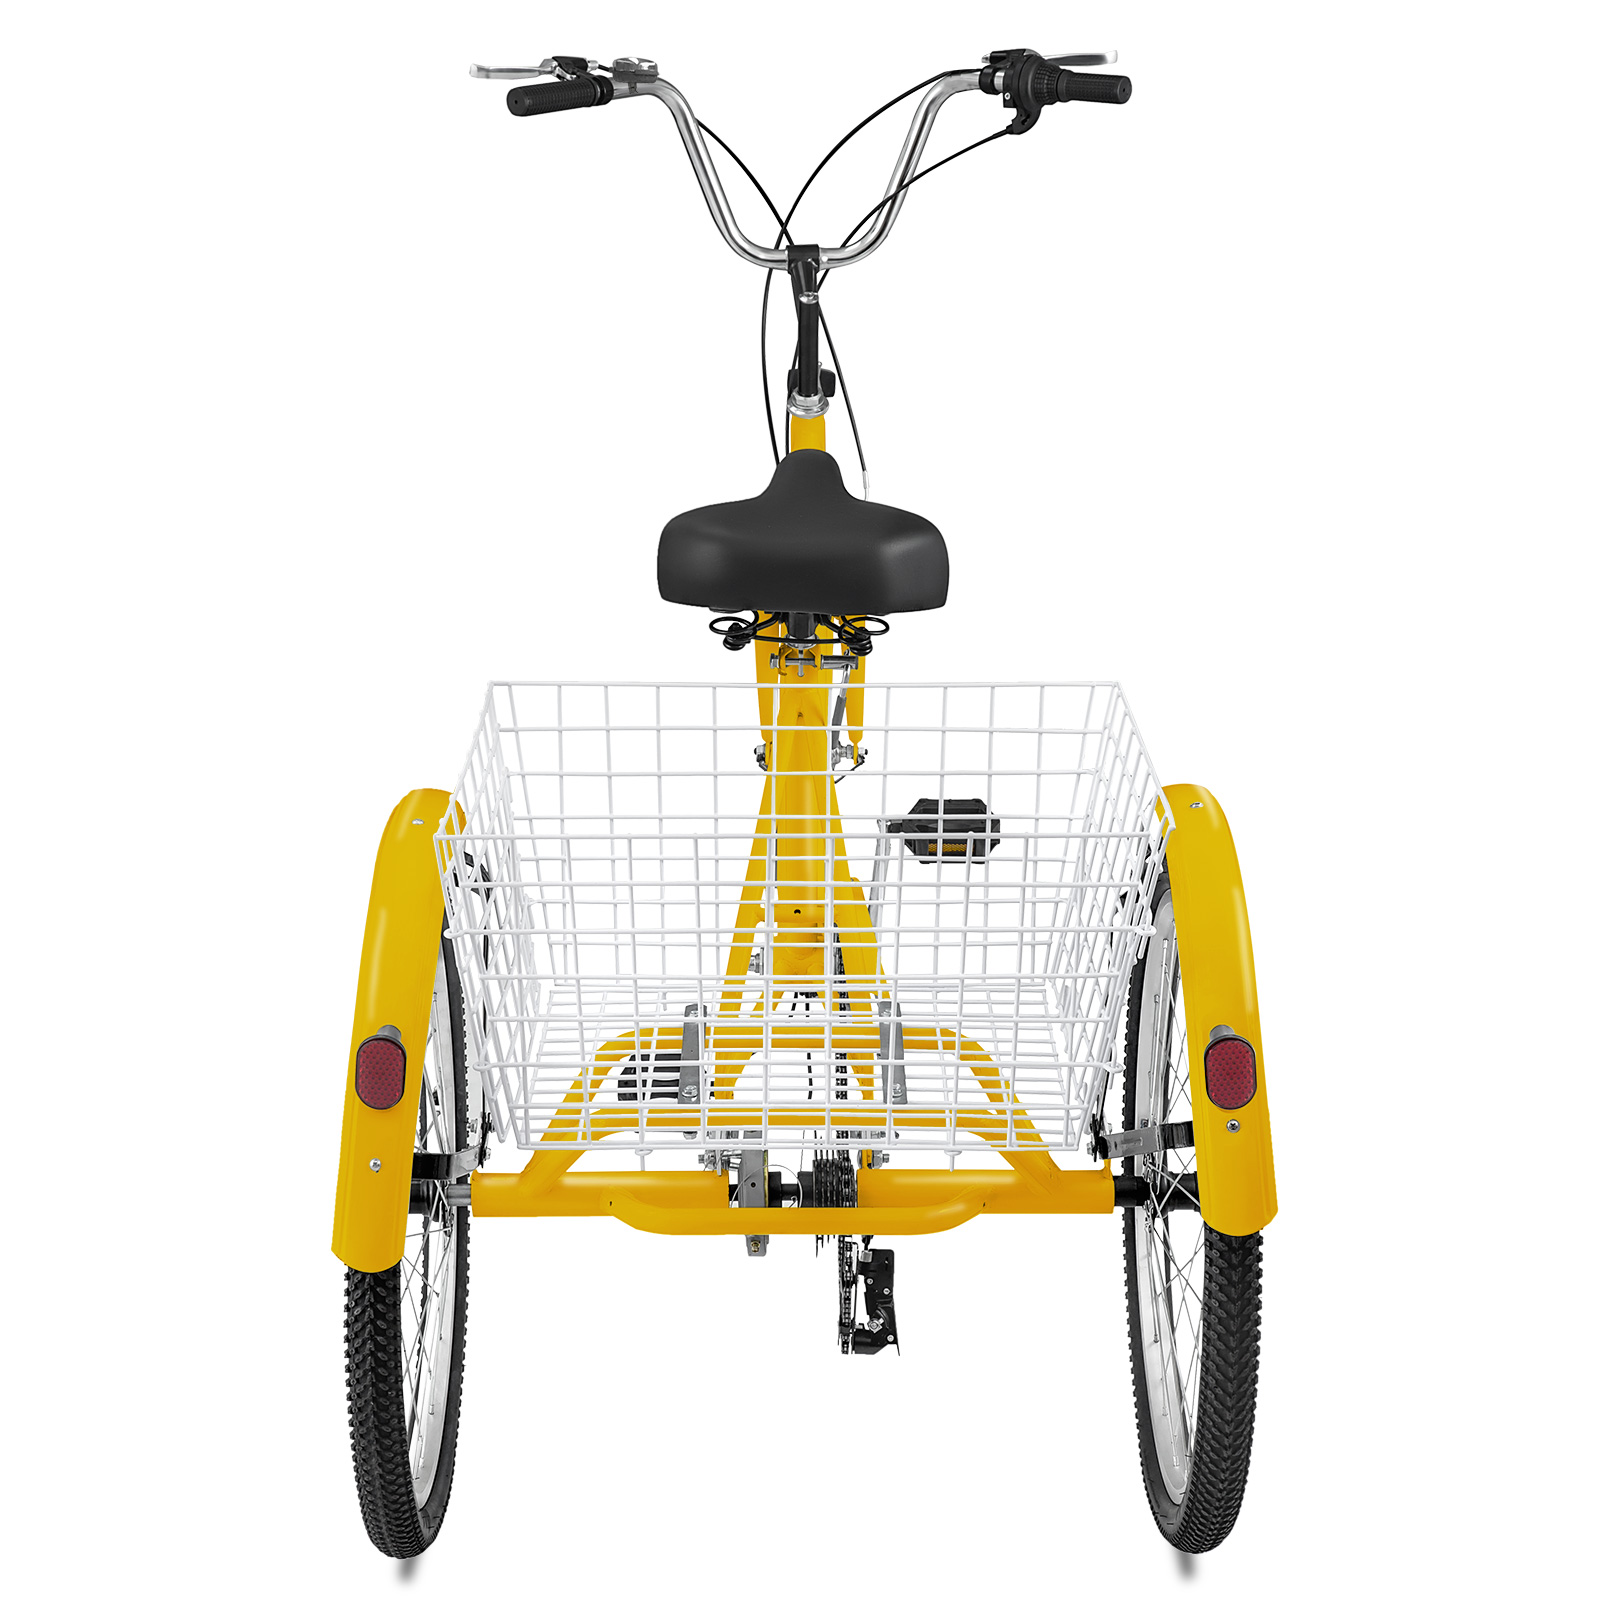 20-24-26-034-Adult-Tricycle-1-7-Speed-3-Wheel-Large-Basket-For-Shopping-Optional thumbnail 276